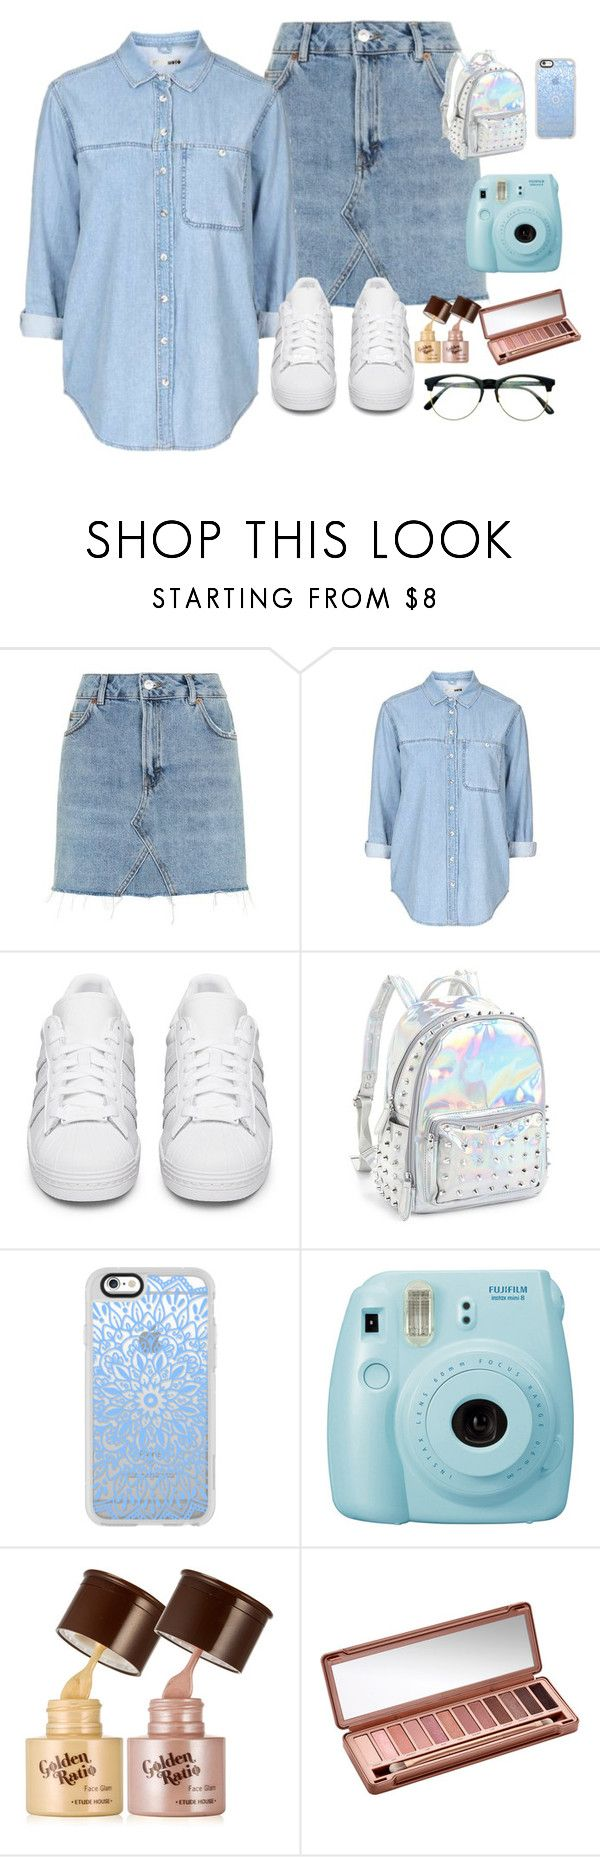 """""""162. Prayer Meeting Contest"""" by lifeissweet170000 ❤ liked on Polyvore featuring Topshop, adidas Originals, Bari Lynn, Casetify, Fujifilm, Urban Decay and Retrò"""